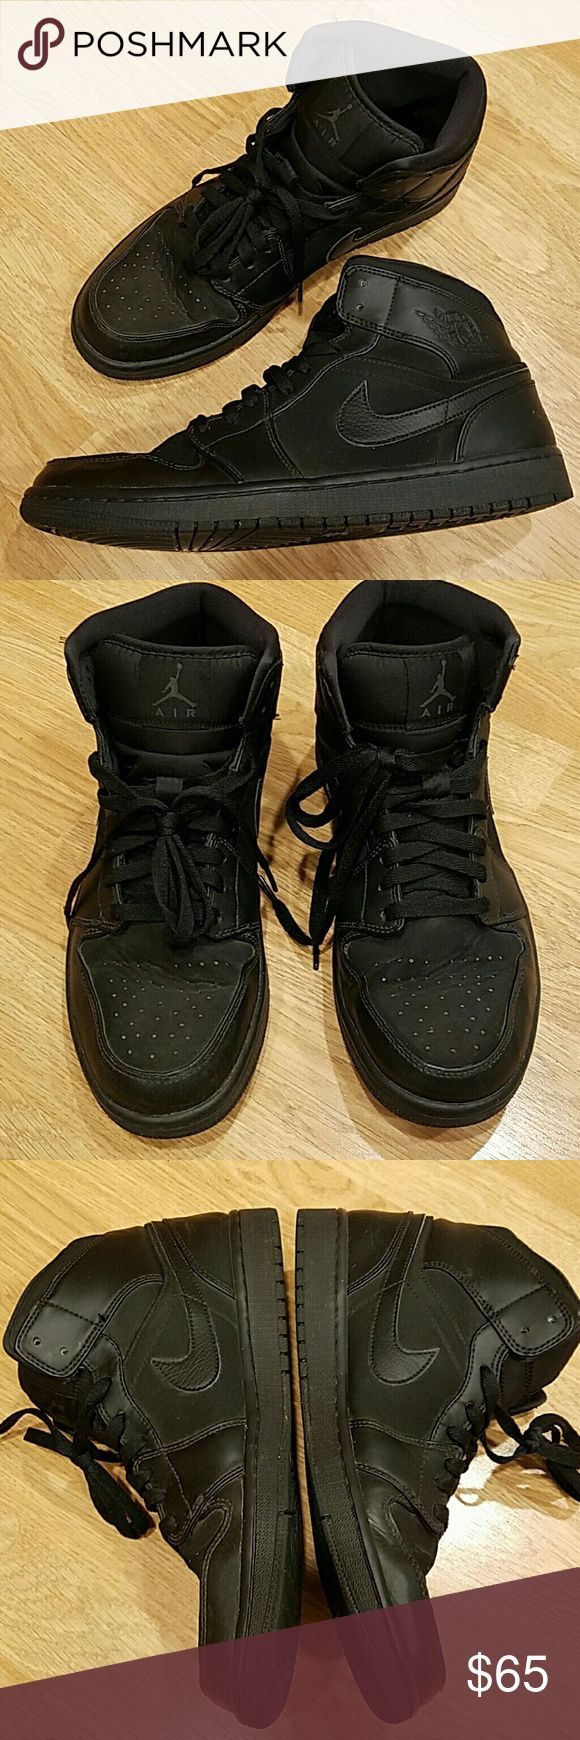 NIKE AIR JORDAN 1 MID BLACK Authentic Nike Air Jordan all black colorway. In great used condition only flaw is burn mark on laces. No damage to shoe. See last photo. Size 10.5 mens no box.  Make an offer Nike  Shoes Sneakers